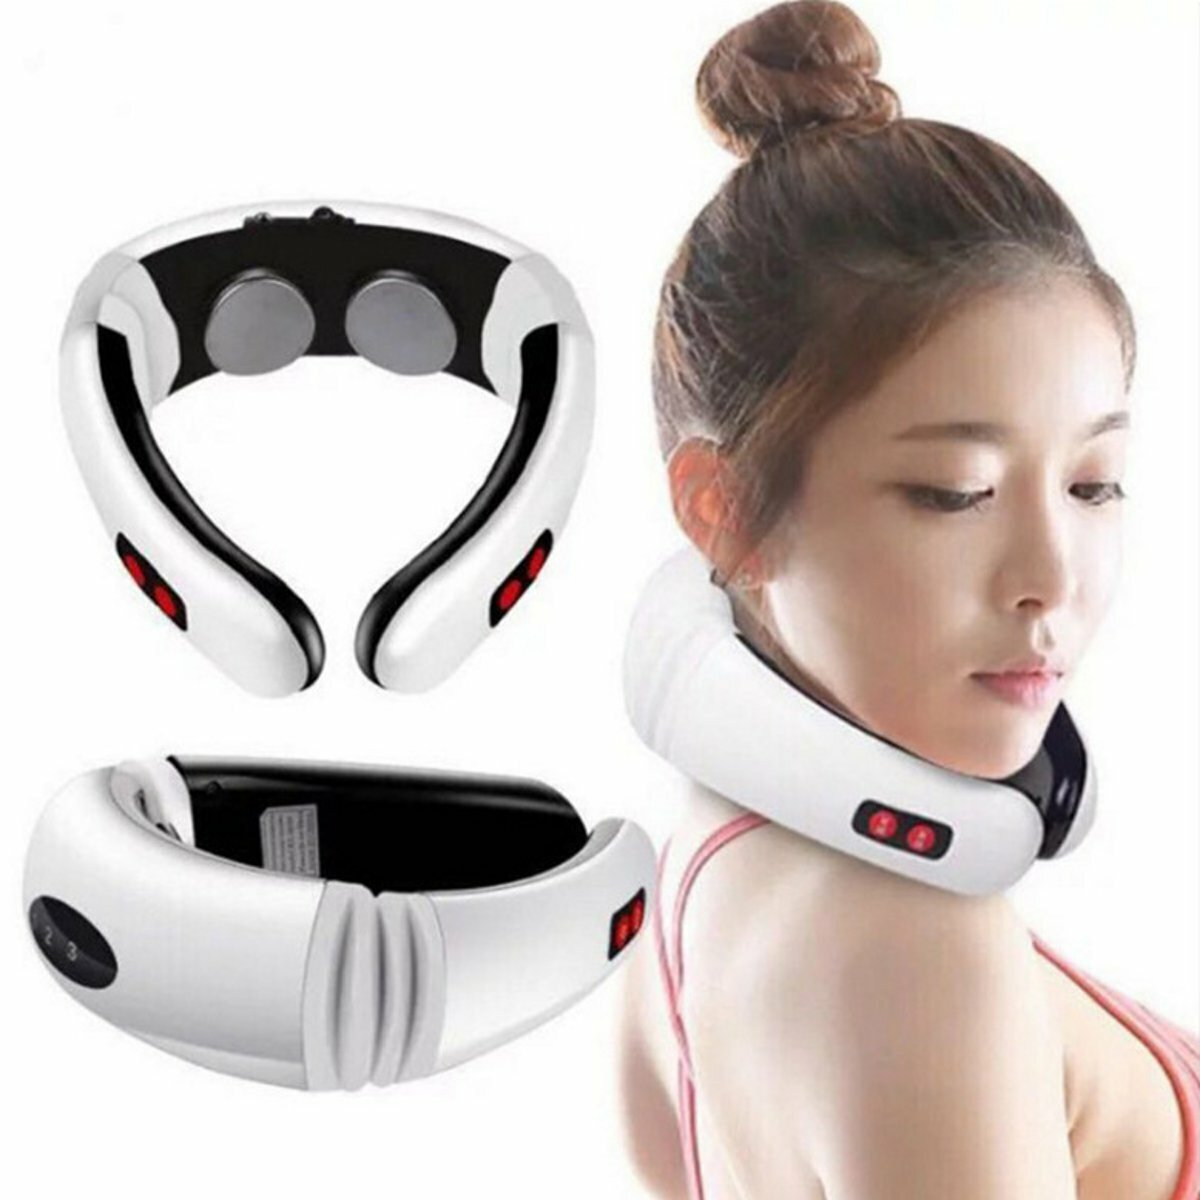 Masażer Hot Electric Cervical Neck Support Massager z EU za $9.12 / ~34zł